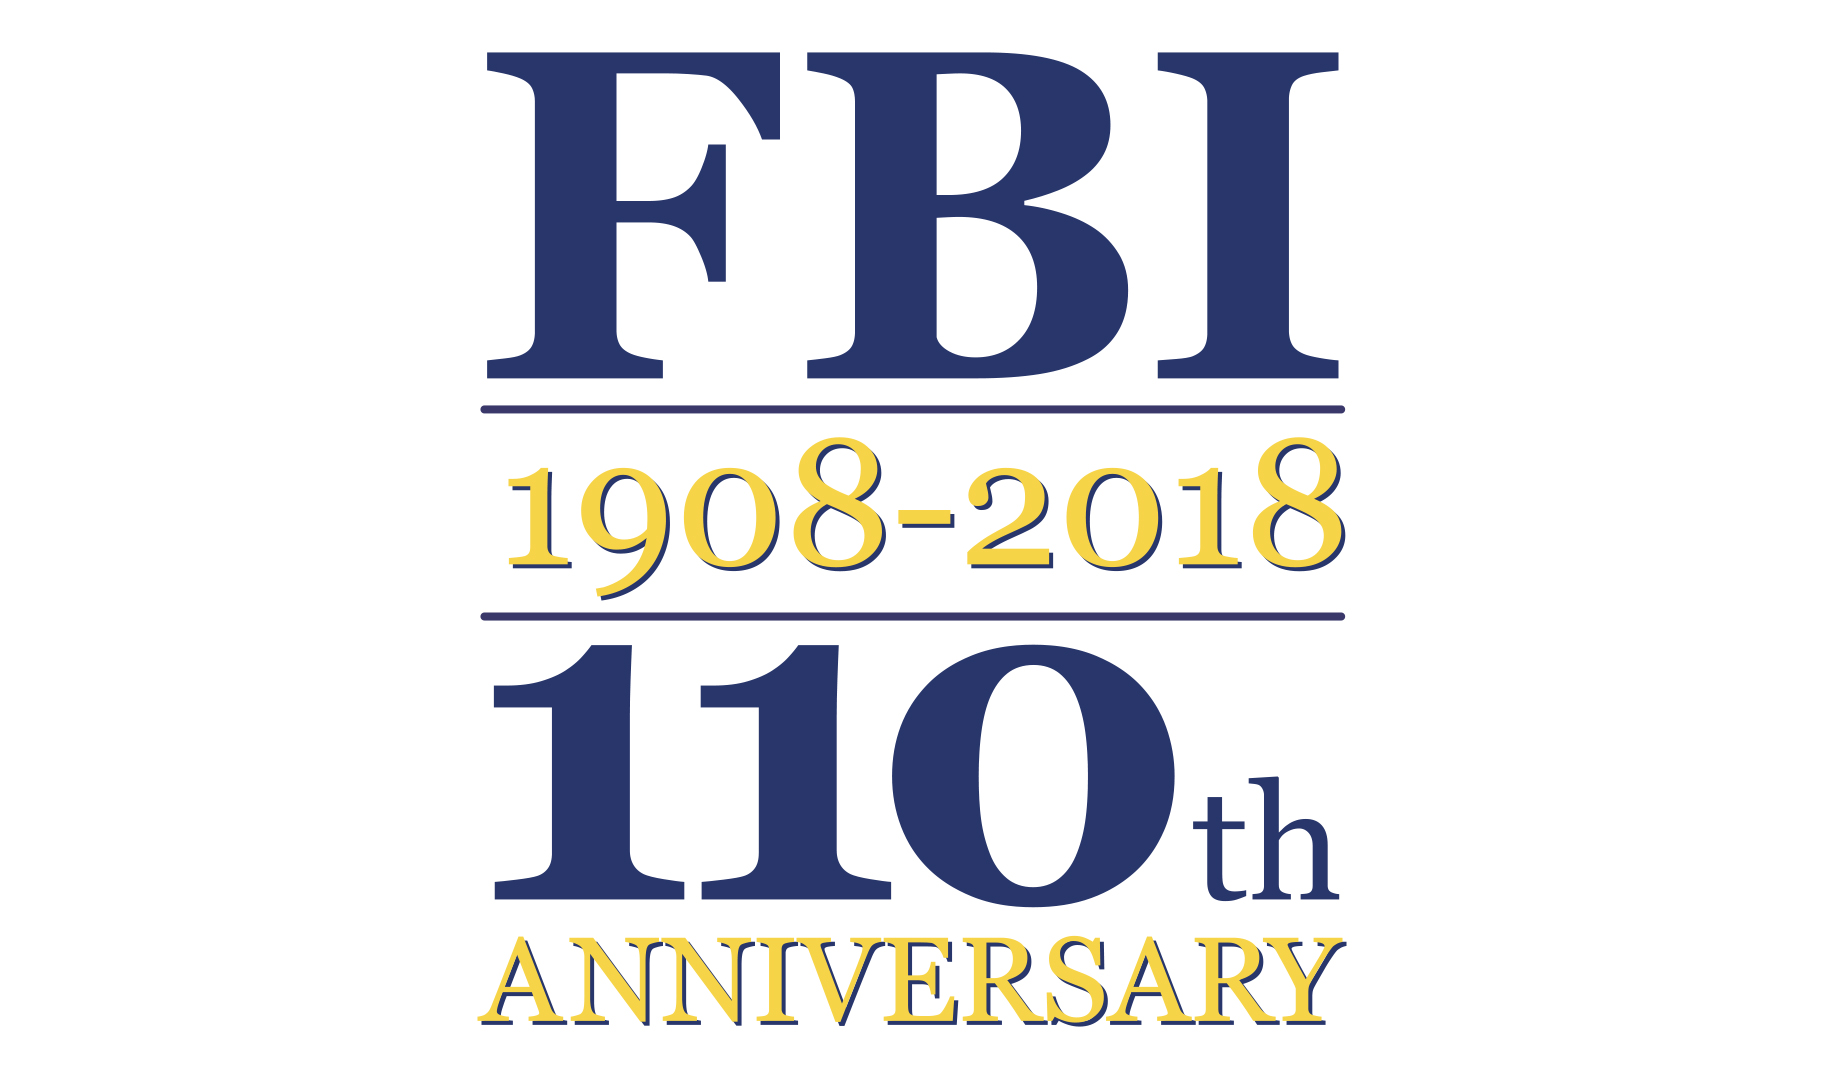 Logo depicting the 110th anniversary of the FBI (1908 to 2018)